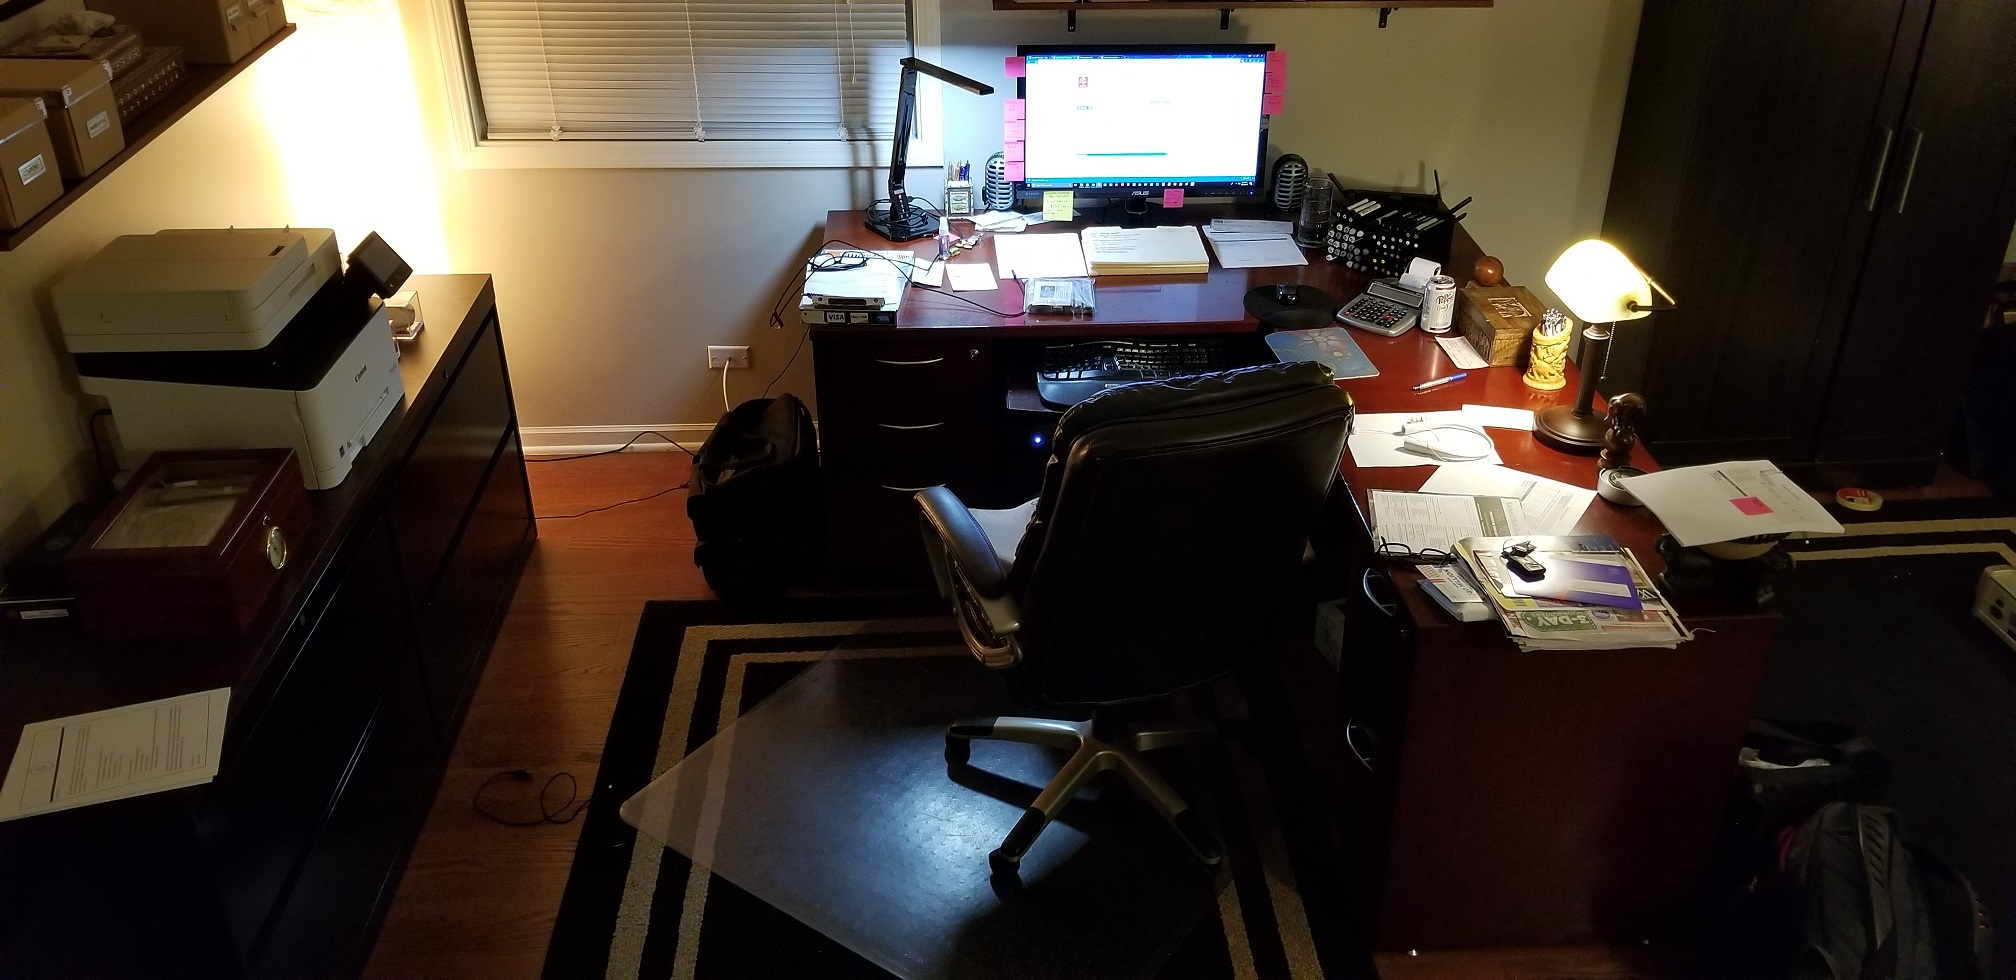 """Lets see your """"Command centers"""" fellow geeks!-2017-11-22-20.41.15.jpg"""